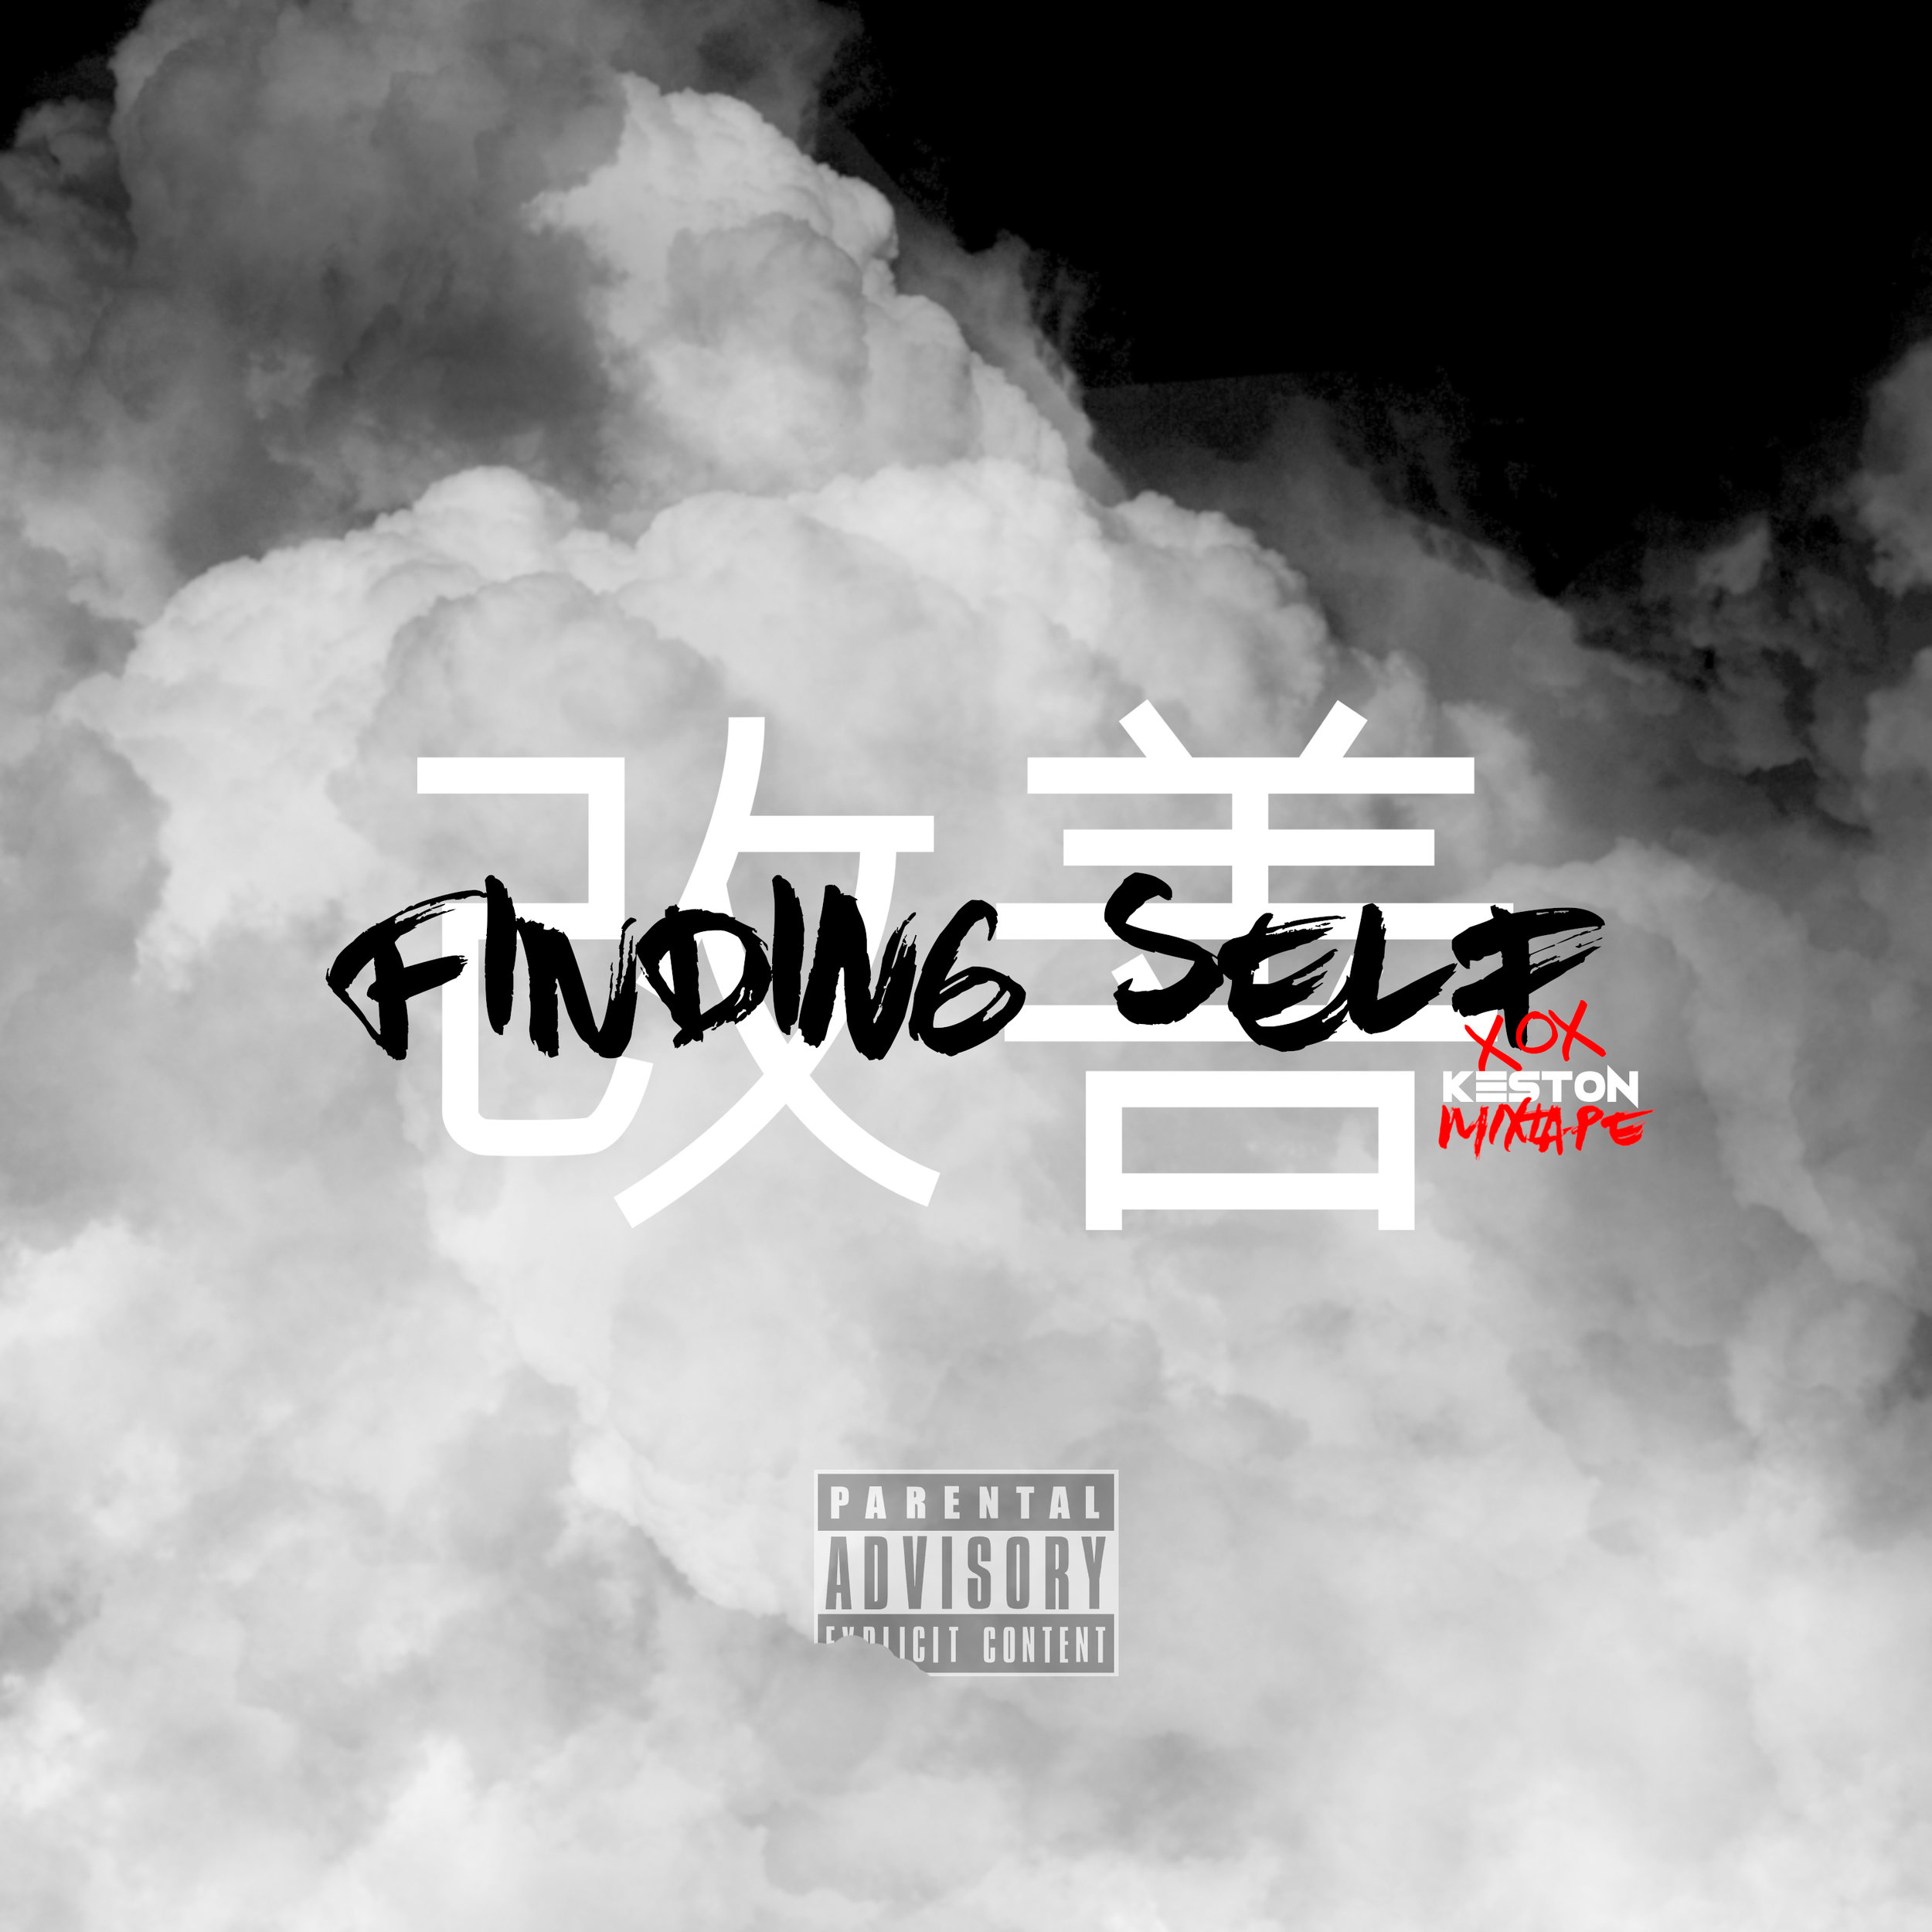 Finding Self Mixtape COVER.jpg